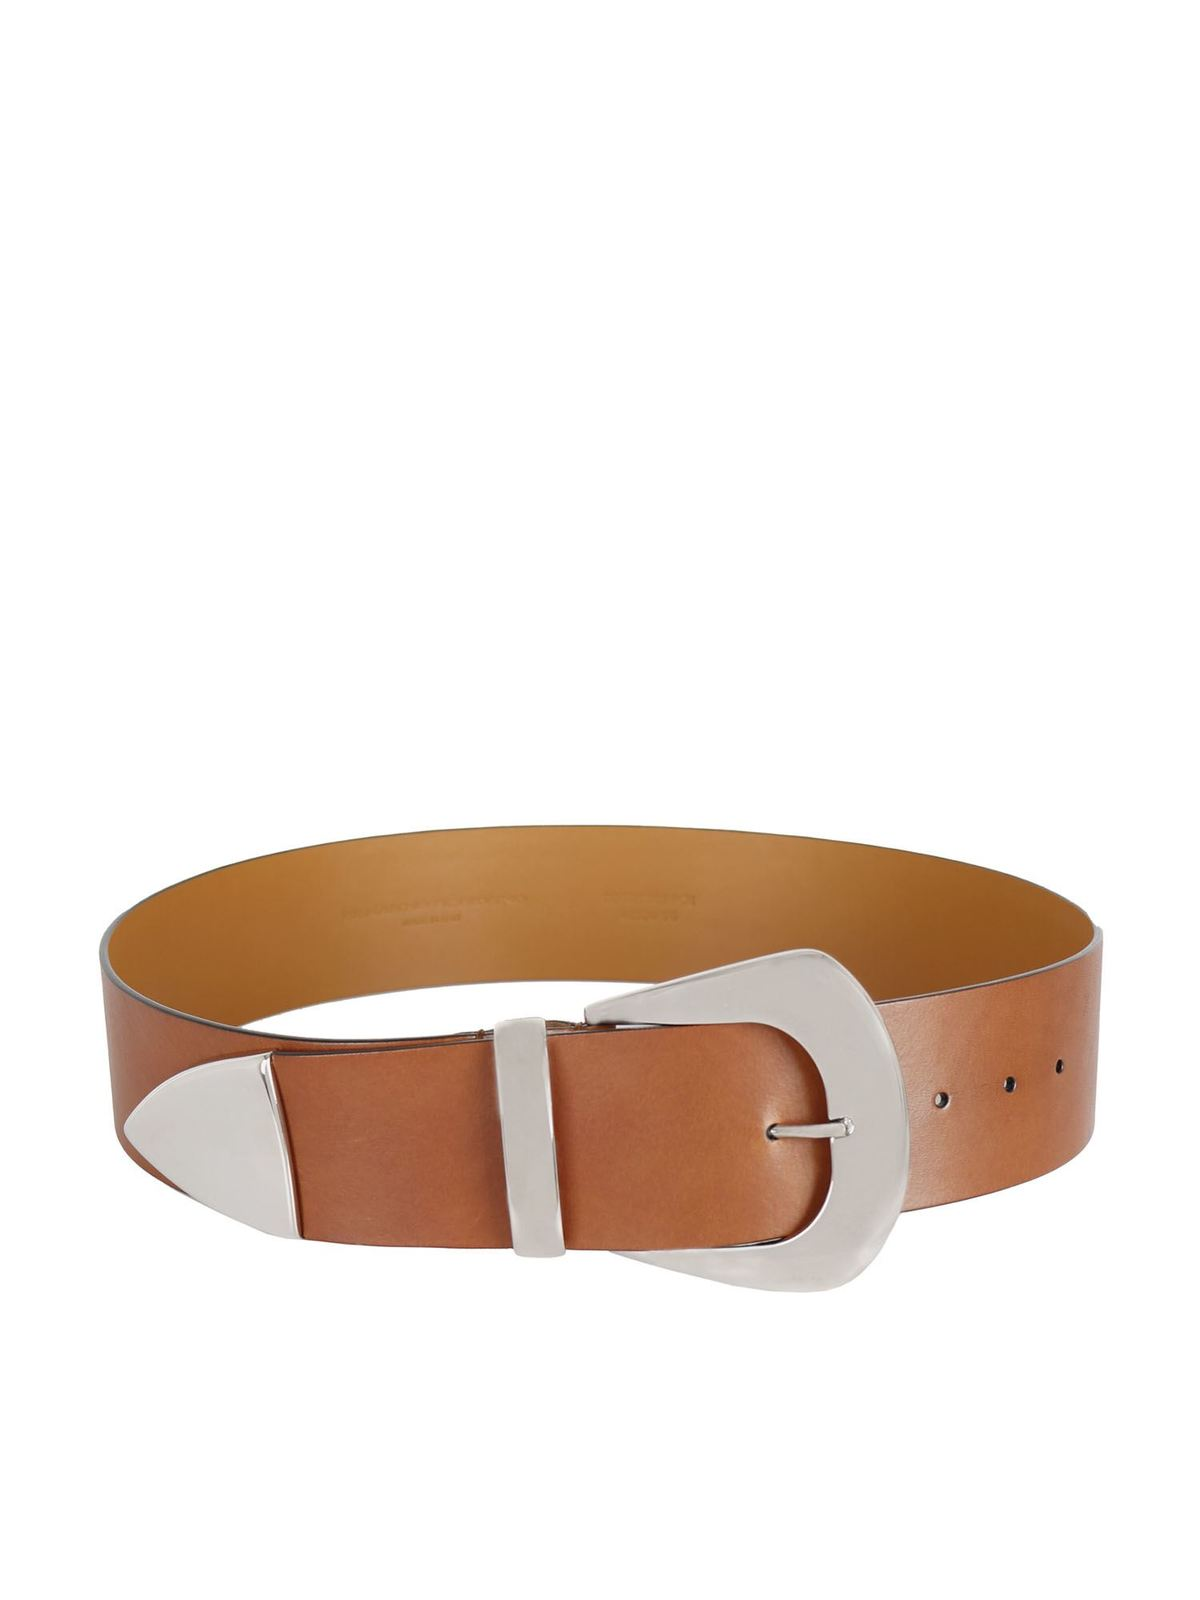 Ermanno Scervino LEATHER BELT IN BROWN